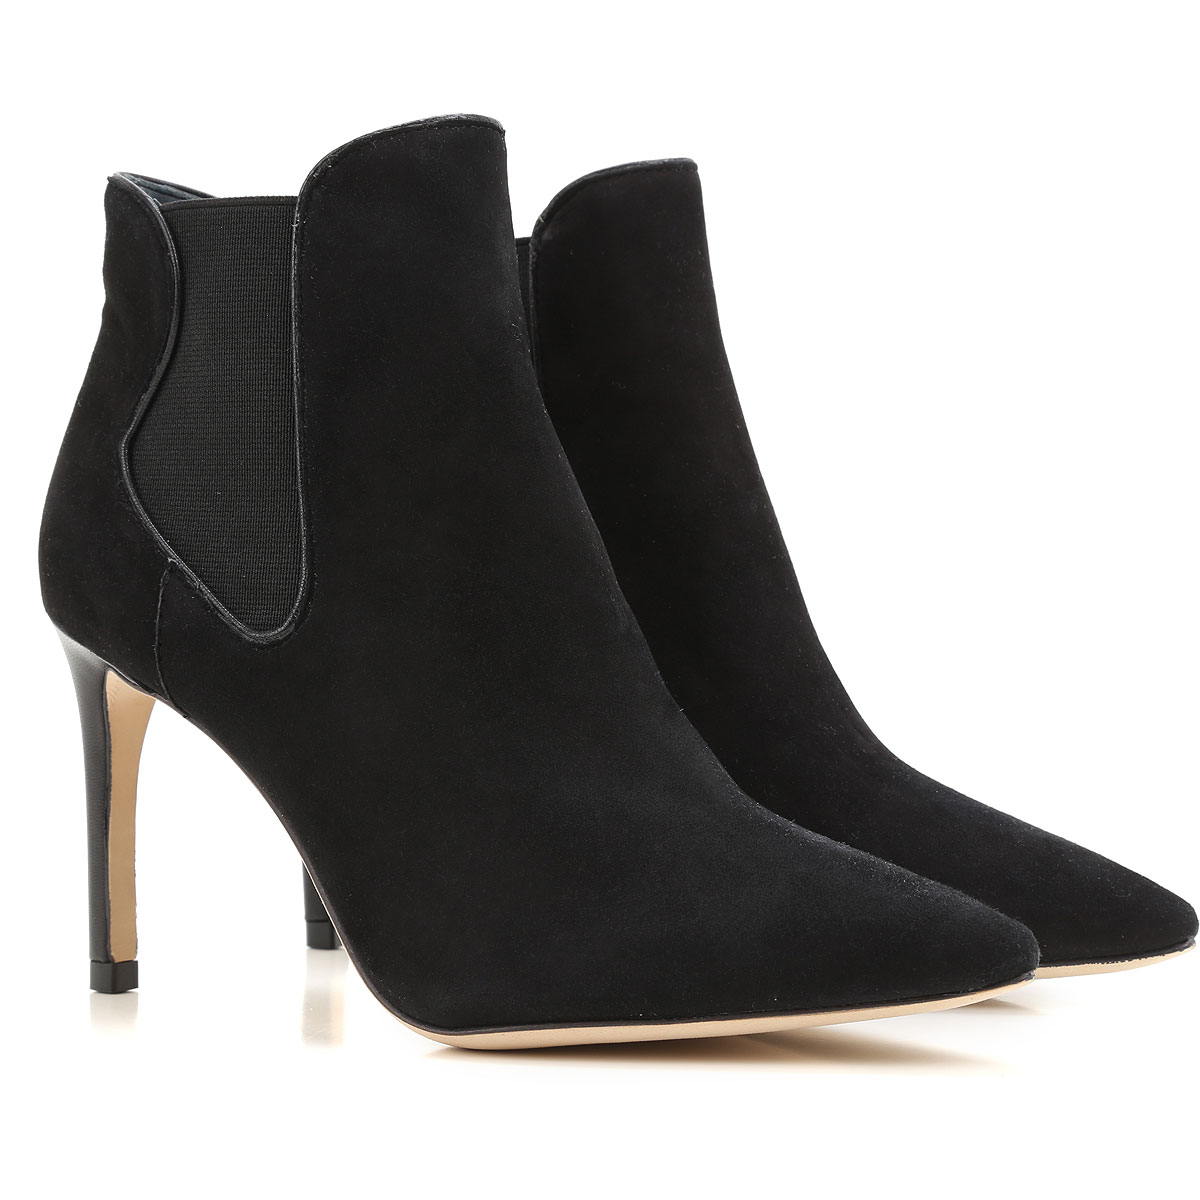 Tory Burch Boots for Women, Booties On Sale in Outlet, Black, Suede leather, 2019, 6 6.5